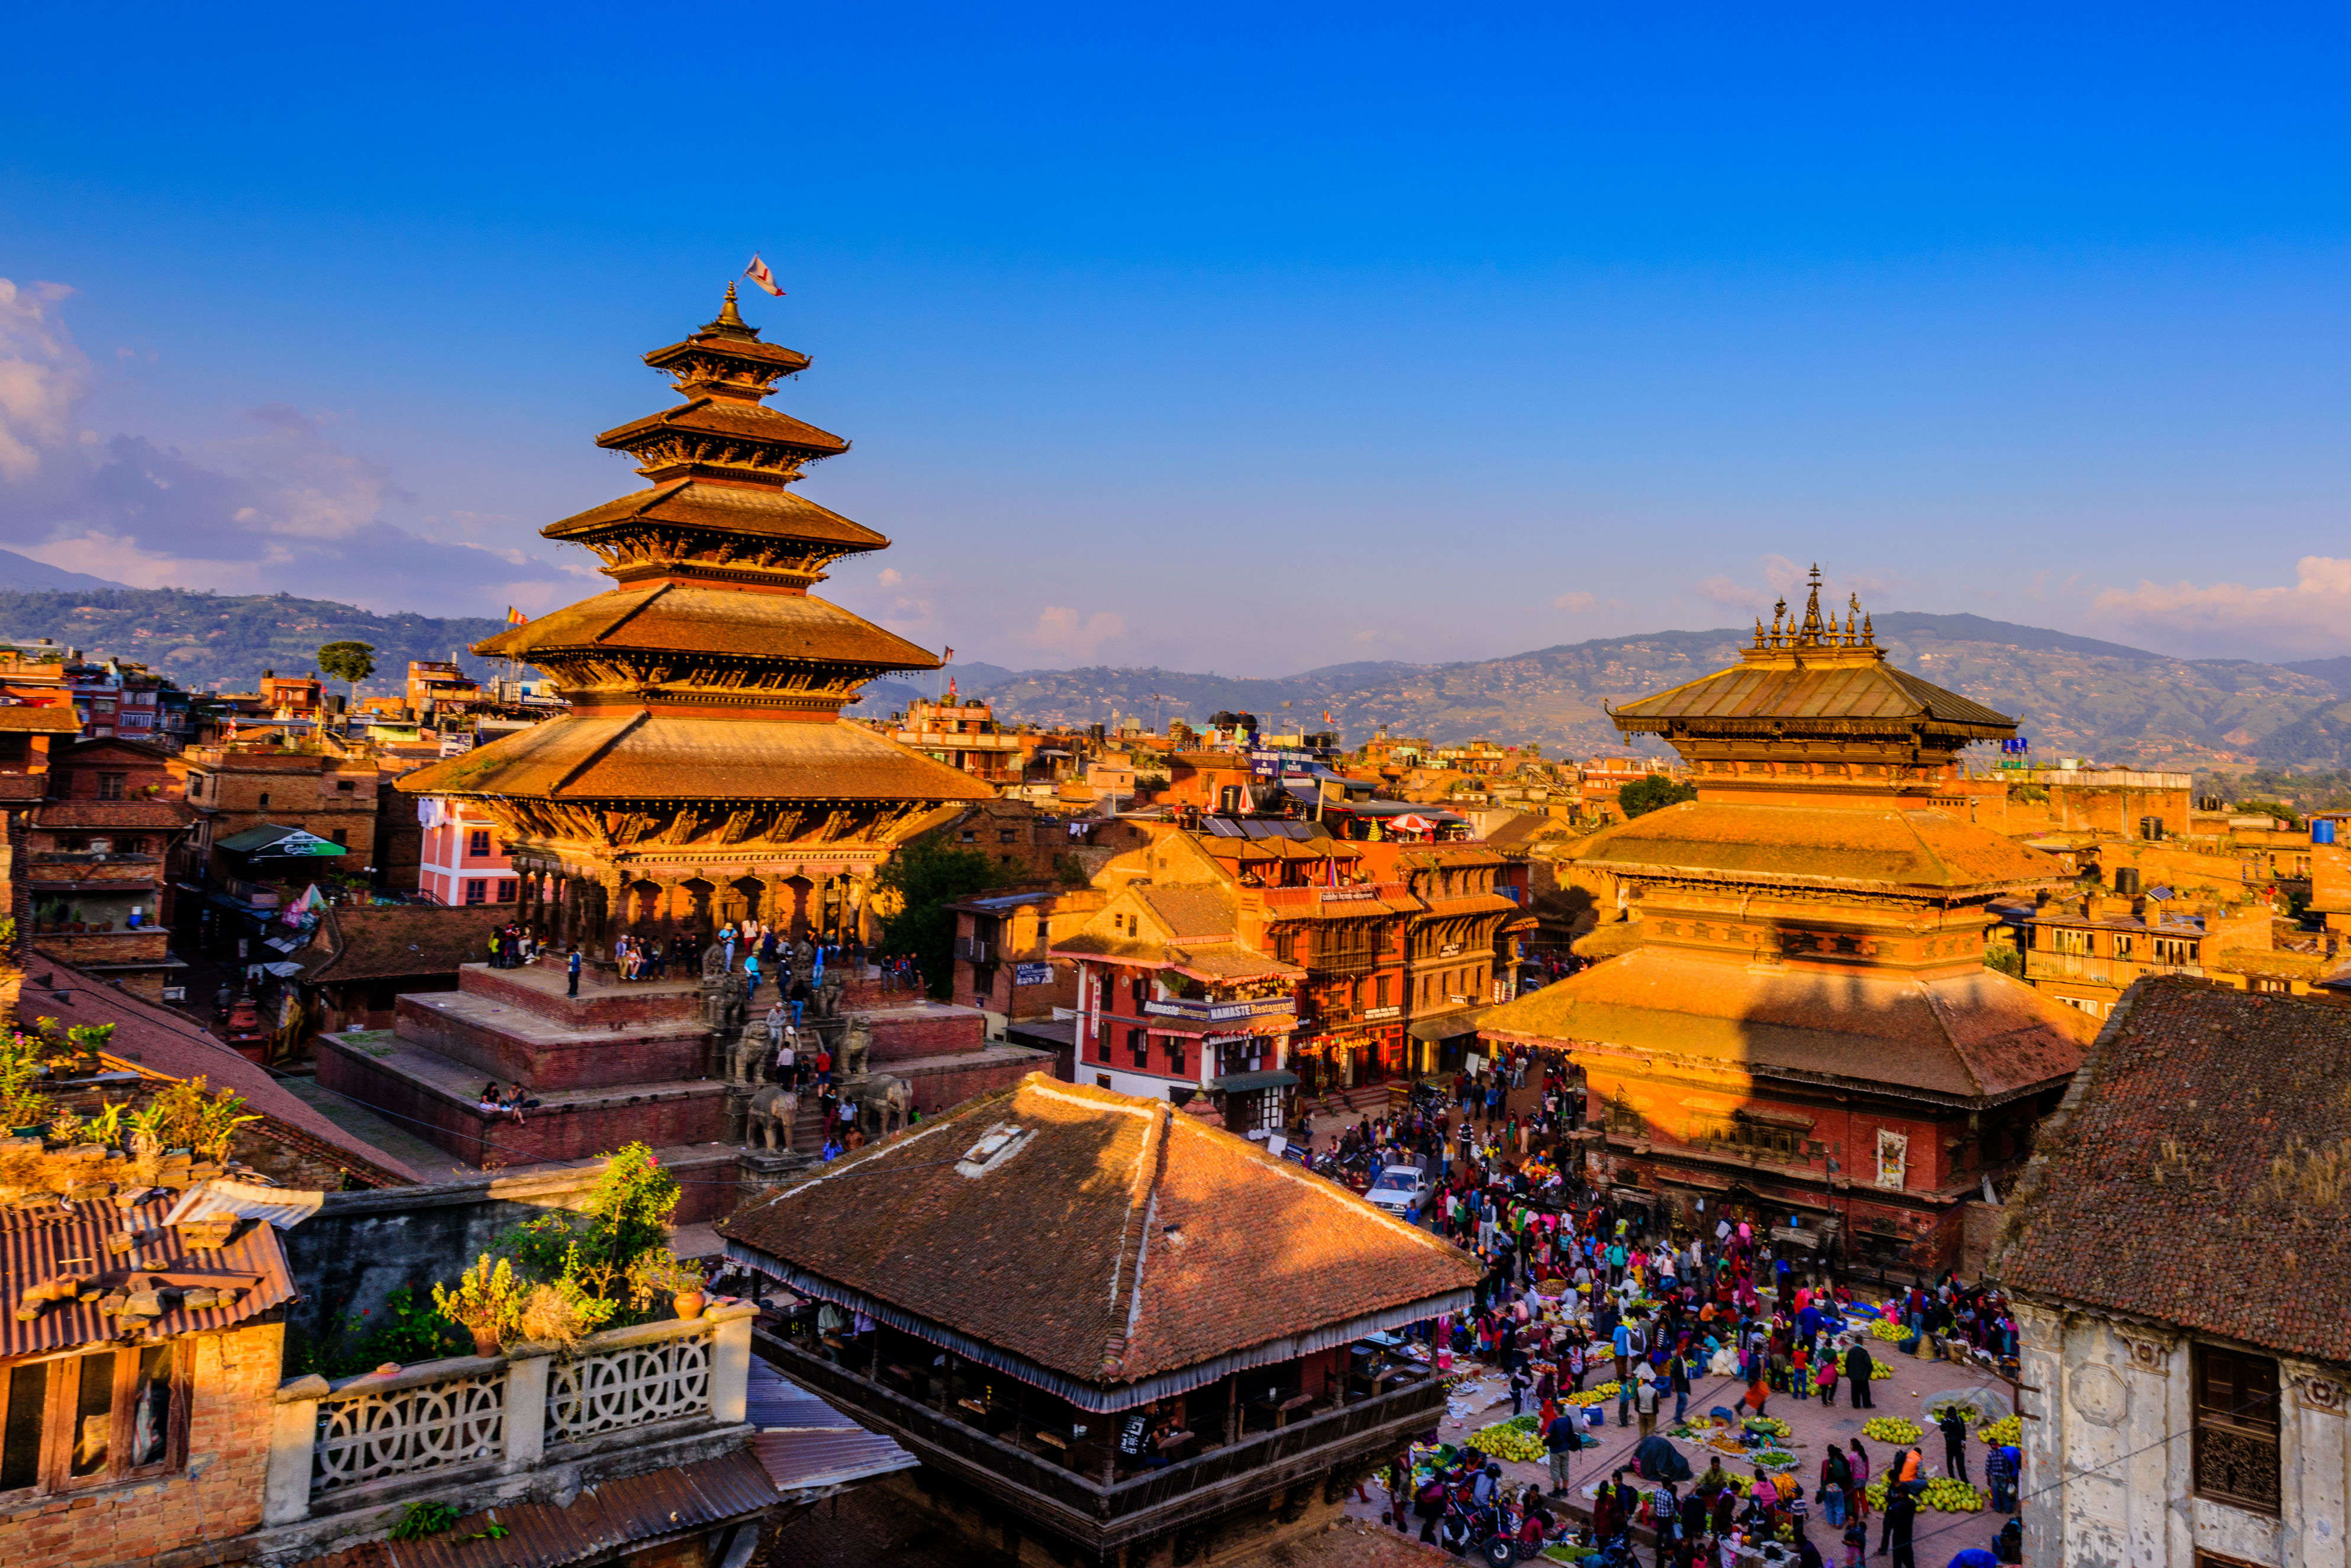 Nepal Tourism to strengthen its tourism game in 2020 with 'Visit Nepal Year'